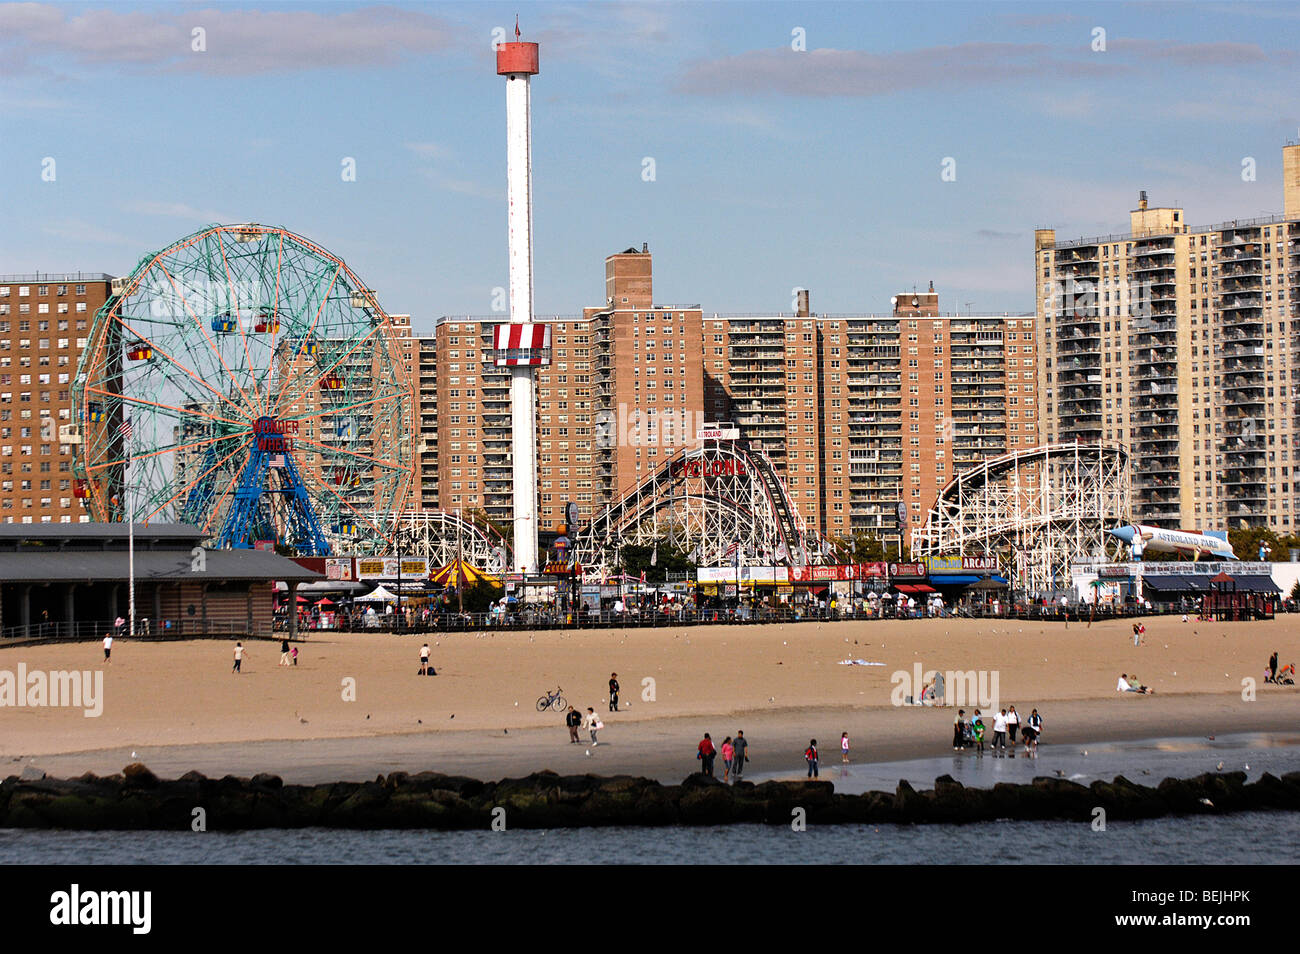 coney island affordable housing